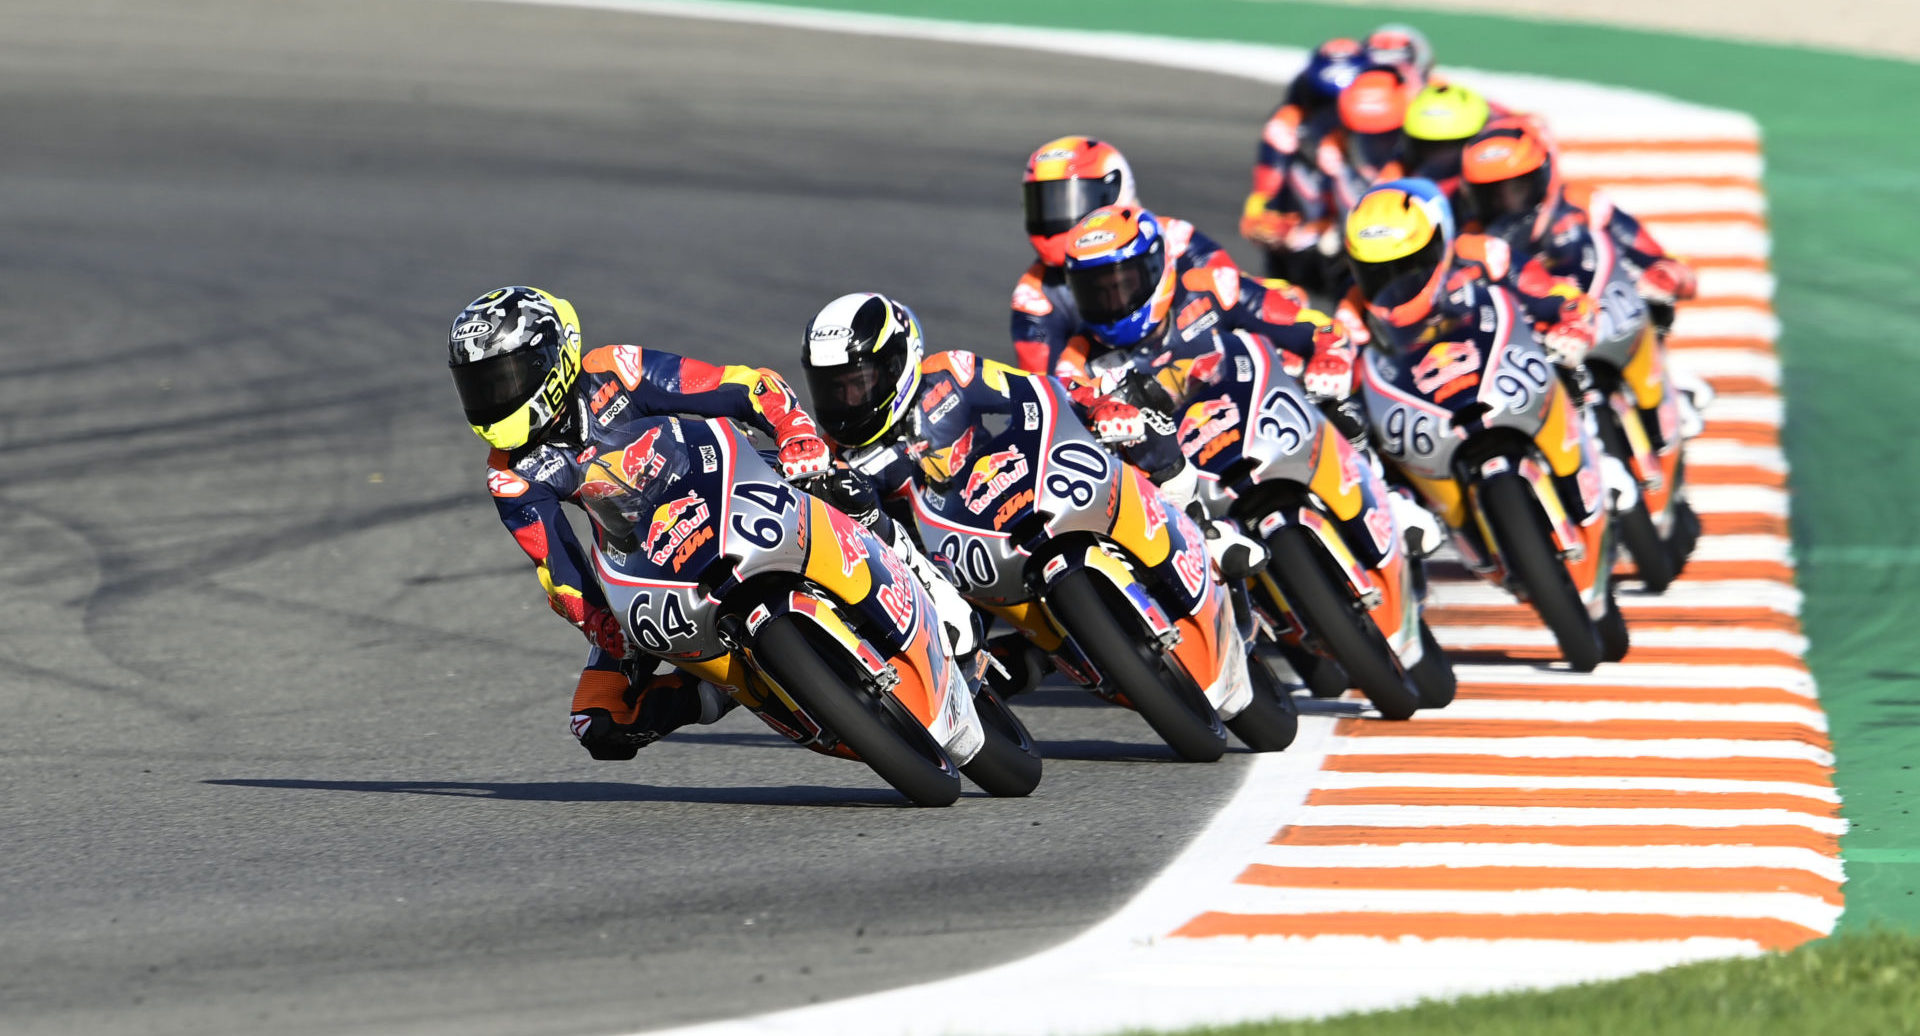 David Munoz (64) leads Red Bull MotoGP Rookies Cup Race Two at Valencia II. Photo courtesy Red Bull.